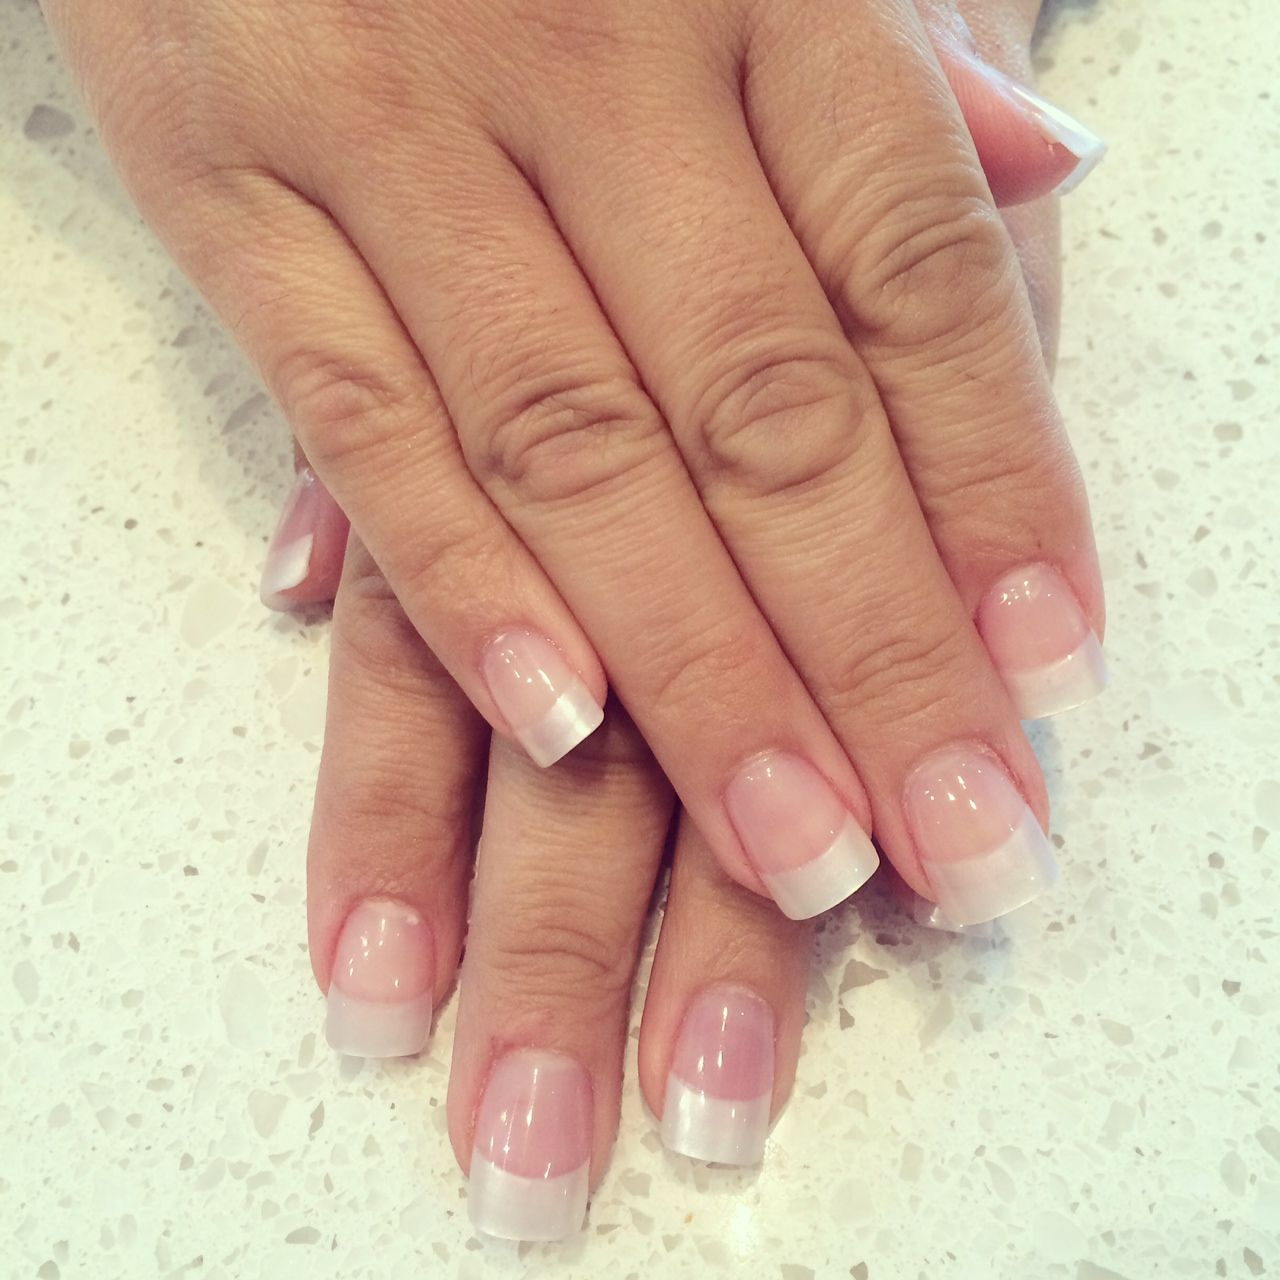 Classic Pearl Tip Acrylic Nails Www Vitalitystudiosa Com Pearl Nails Acrylic Nail Tips Nail Tips